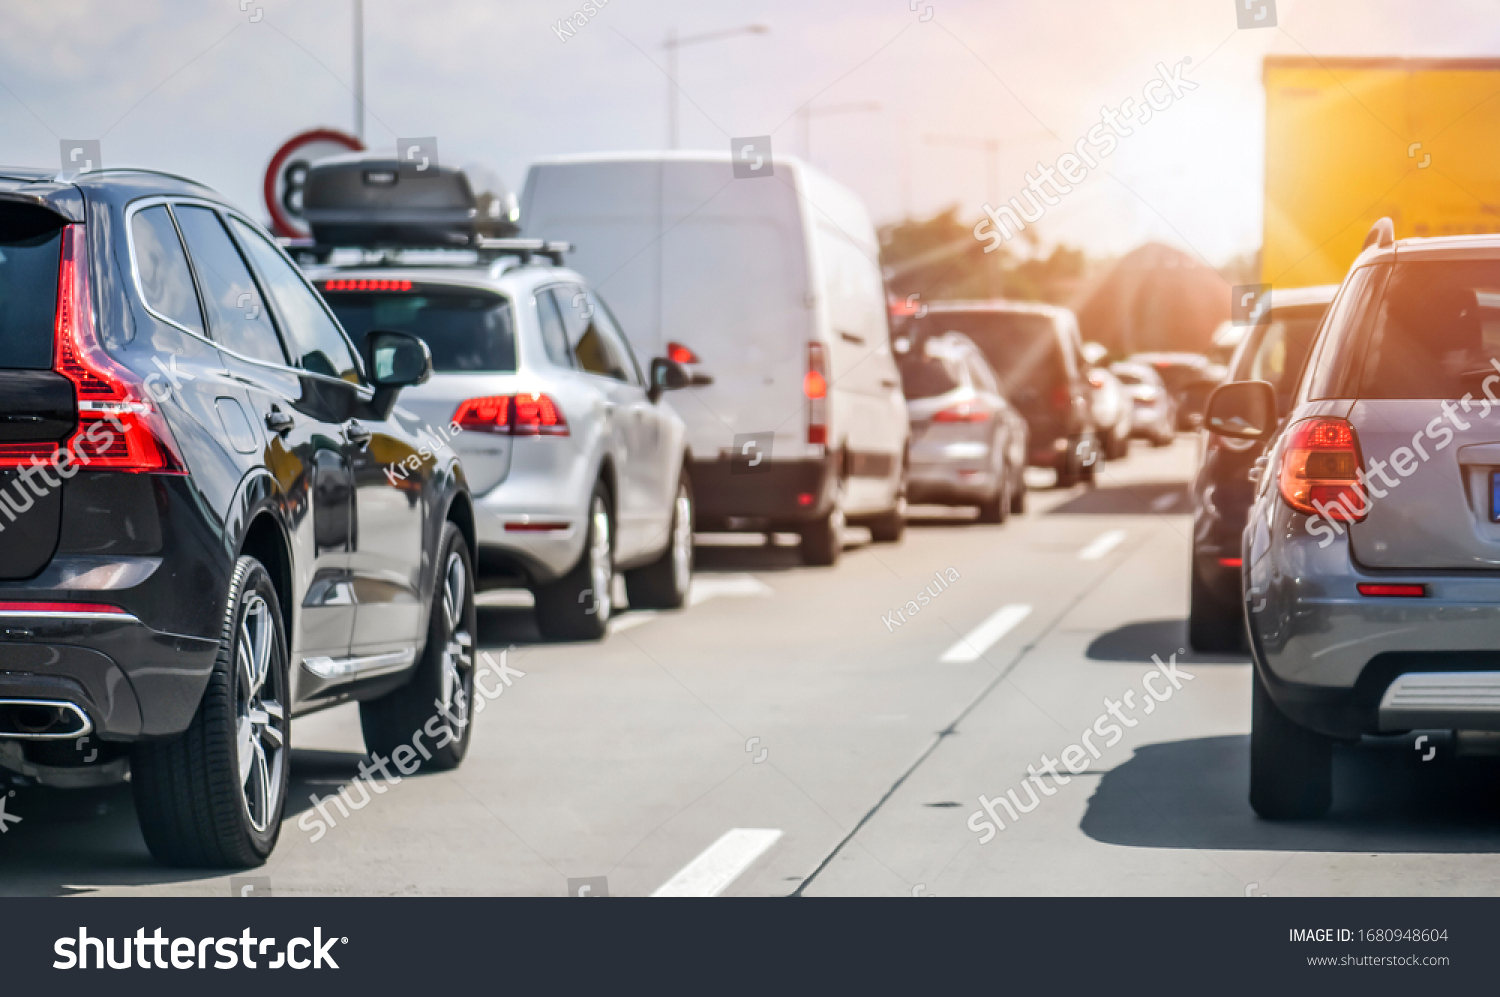 Cars rush hours city street. Car on highway in traffic jam on road. #1680948604